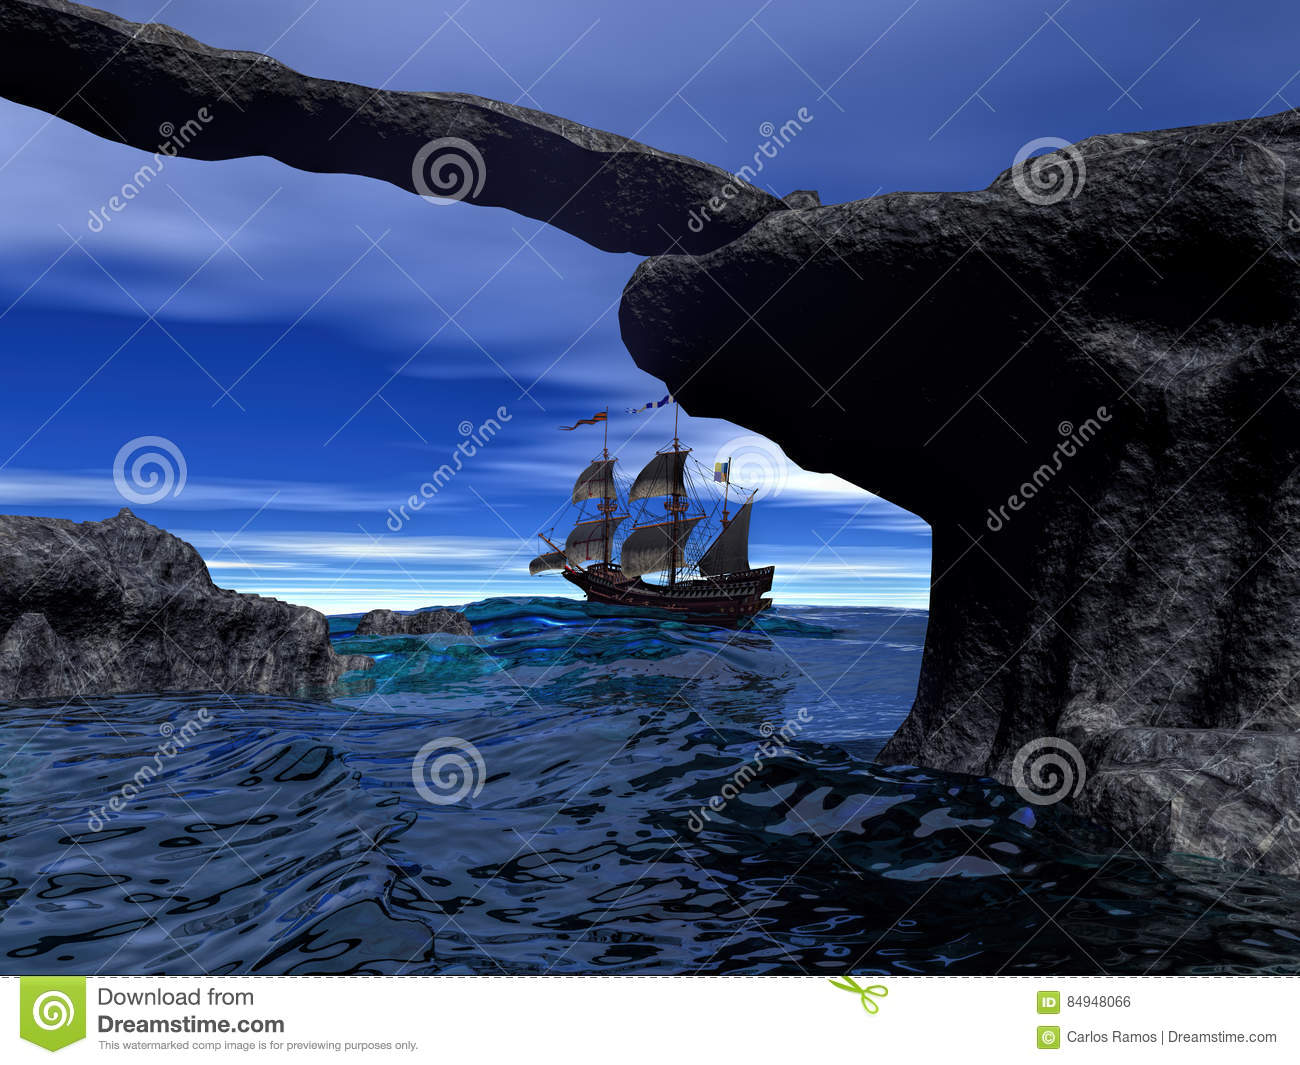 Pirate ship on calm water 3d rendering